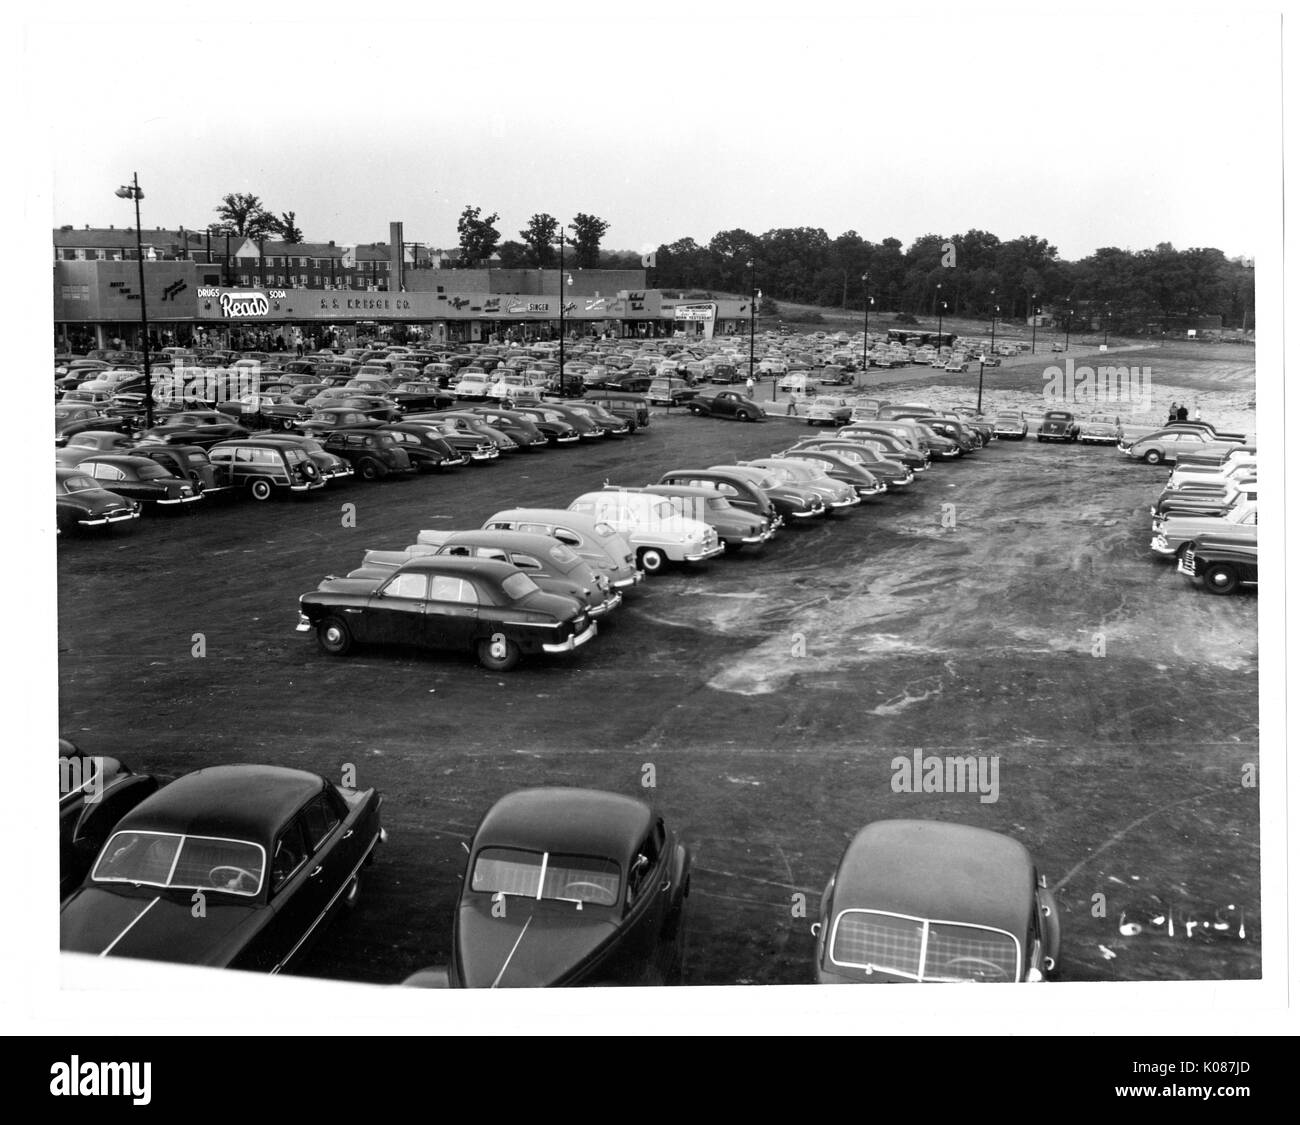 Parking lot of Northwood Shopping center, lots of parked cars, parking lot next to stores as Reads, trees and streetlights also in background, Baltimore, Maryland, 1950. - Stock Image